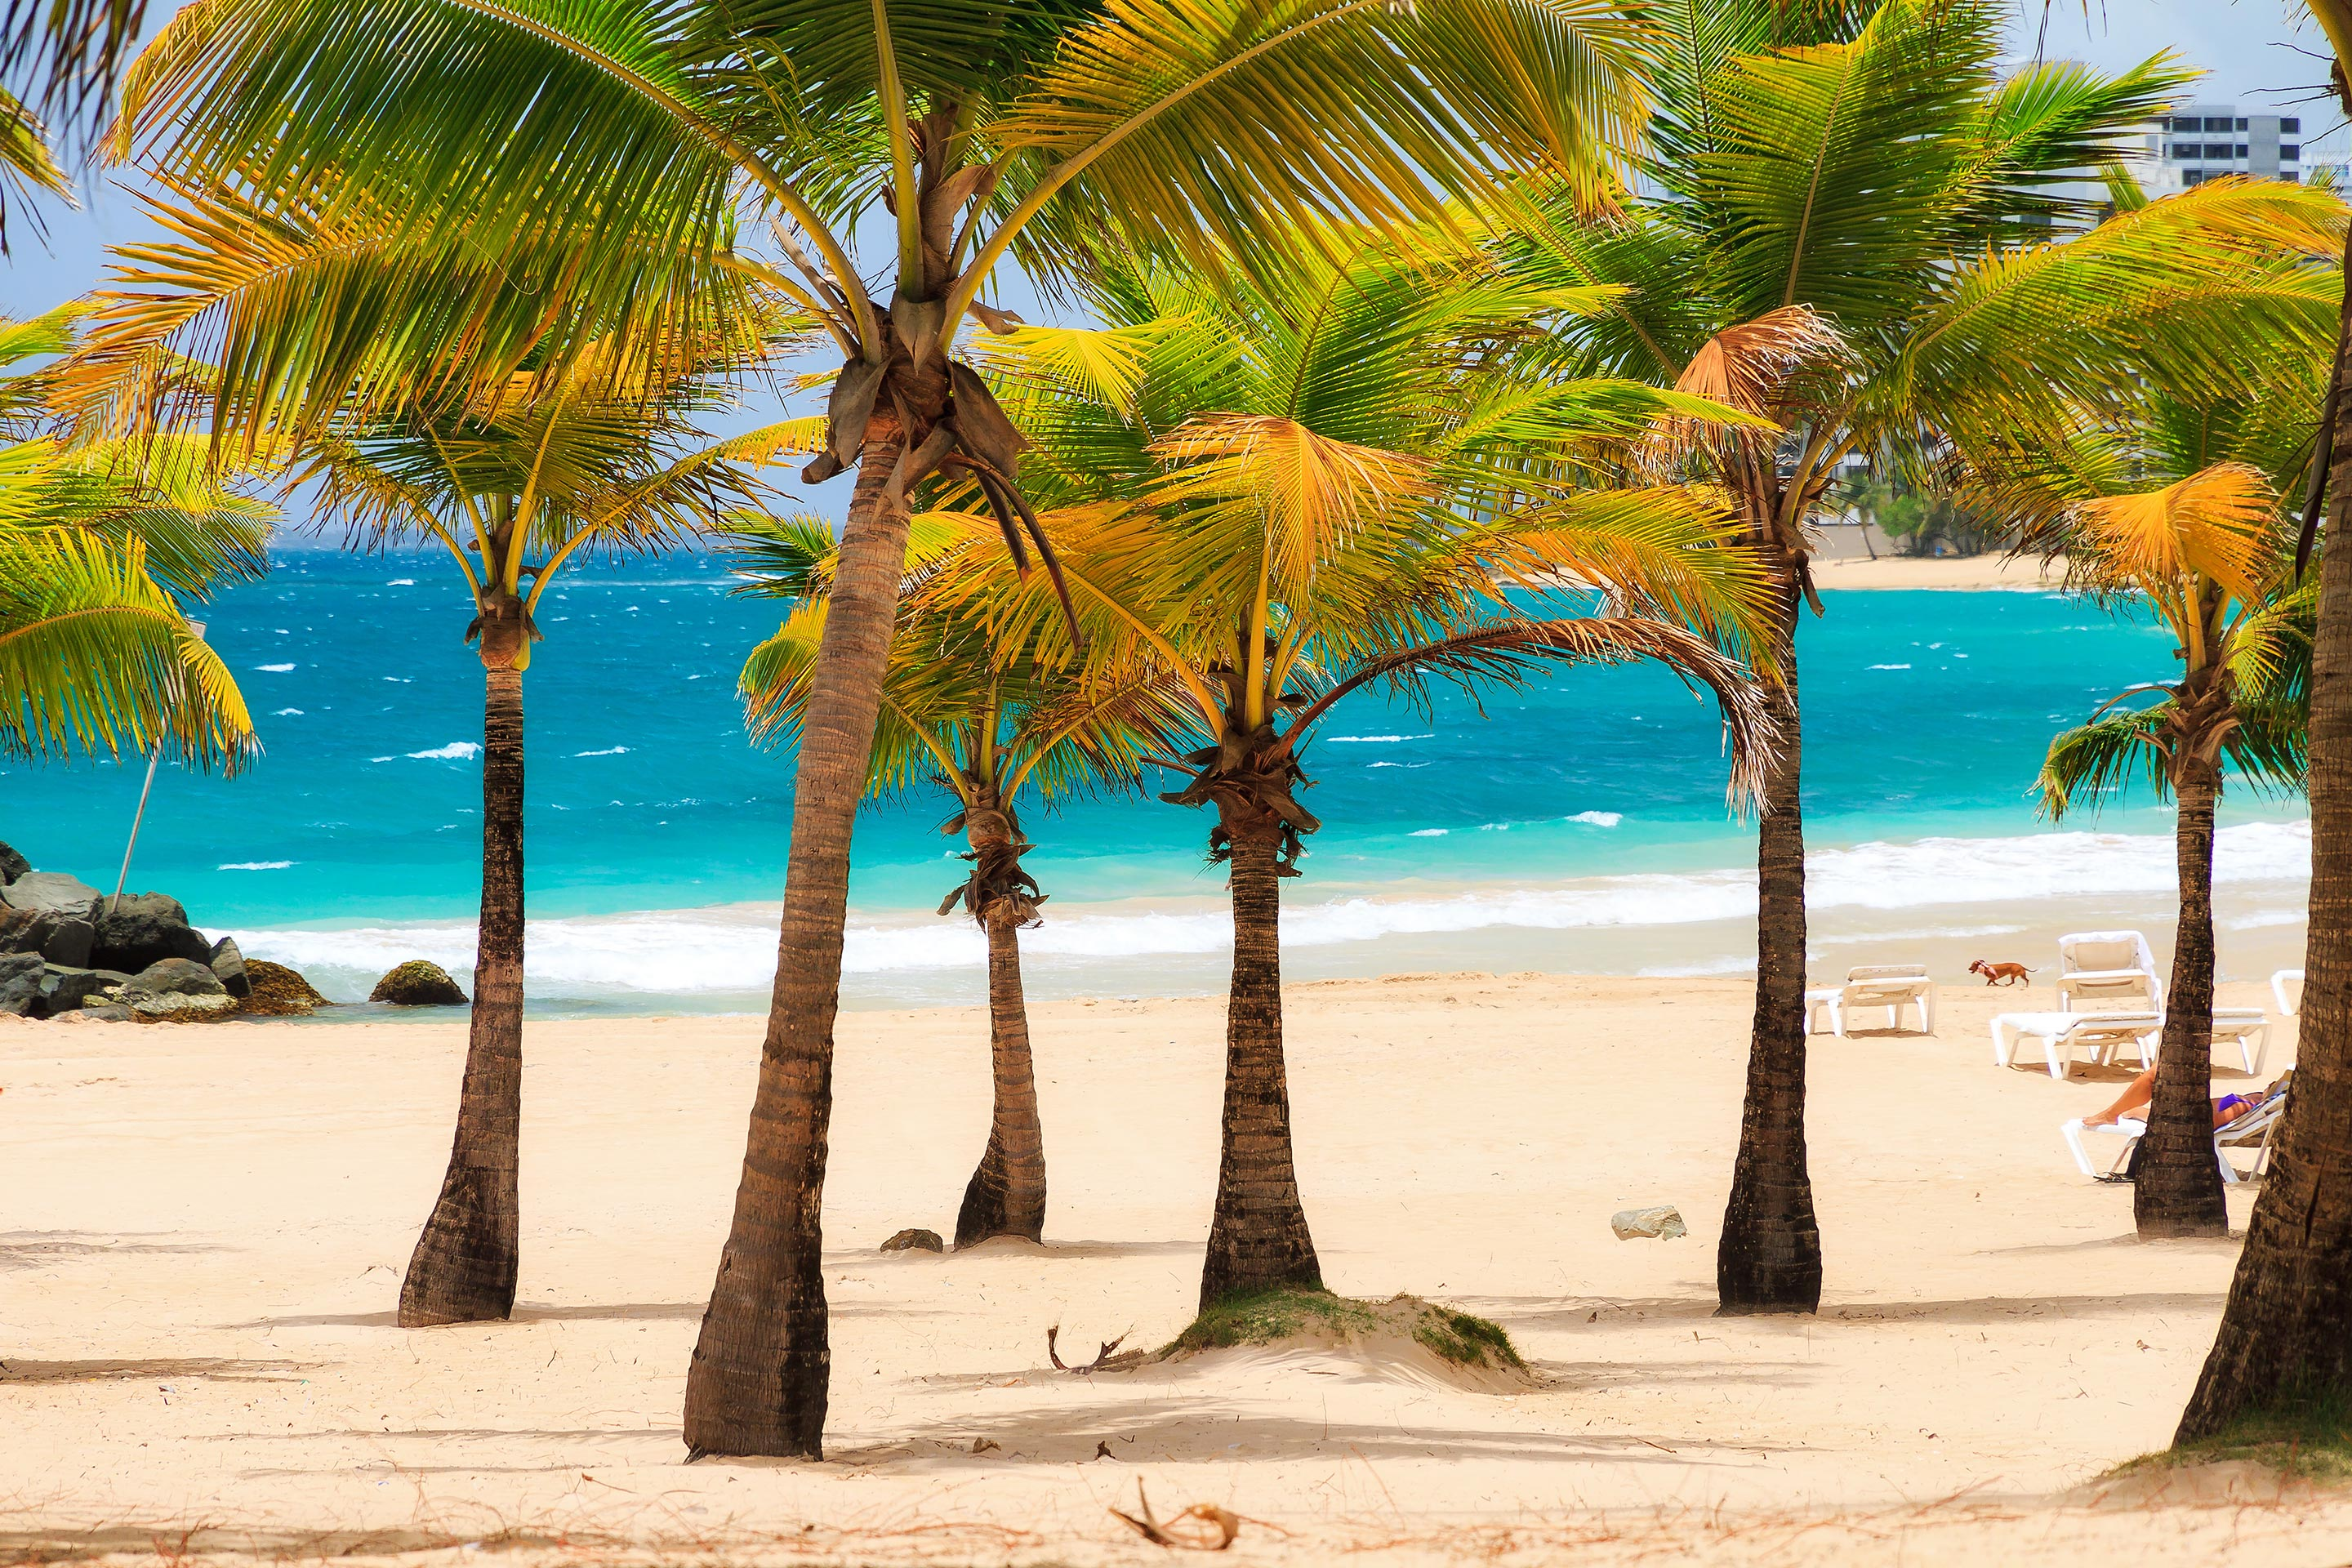 Southern Caribbean Beach with Palm Trees.